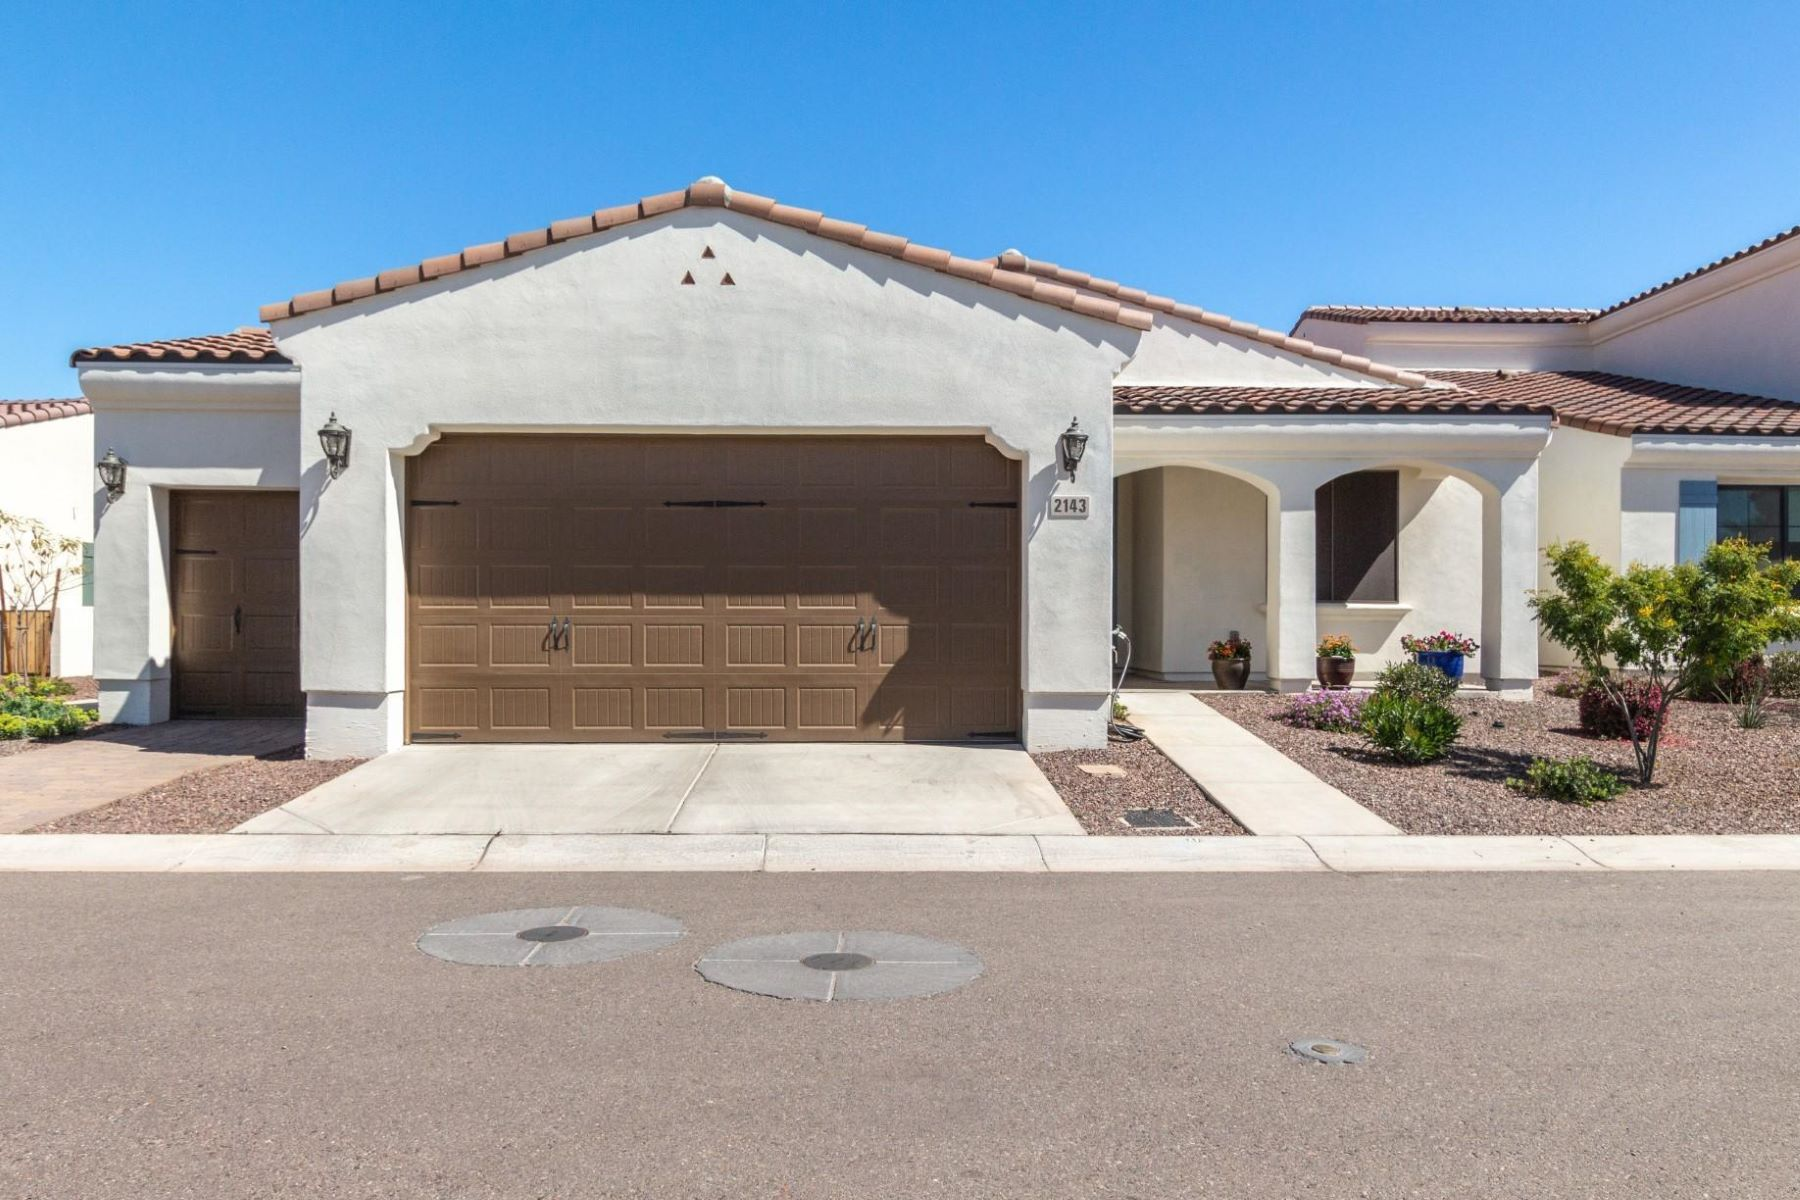 townhouses for Sale at Charming Single Level Townhome 14200 W VILLAGE PKWY 2143 Litchfield Park, Arizona 85340 United States